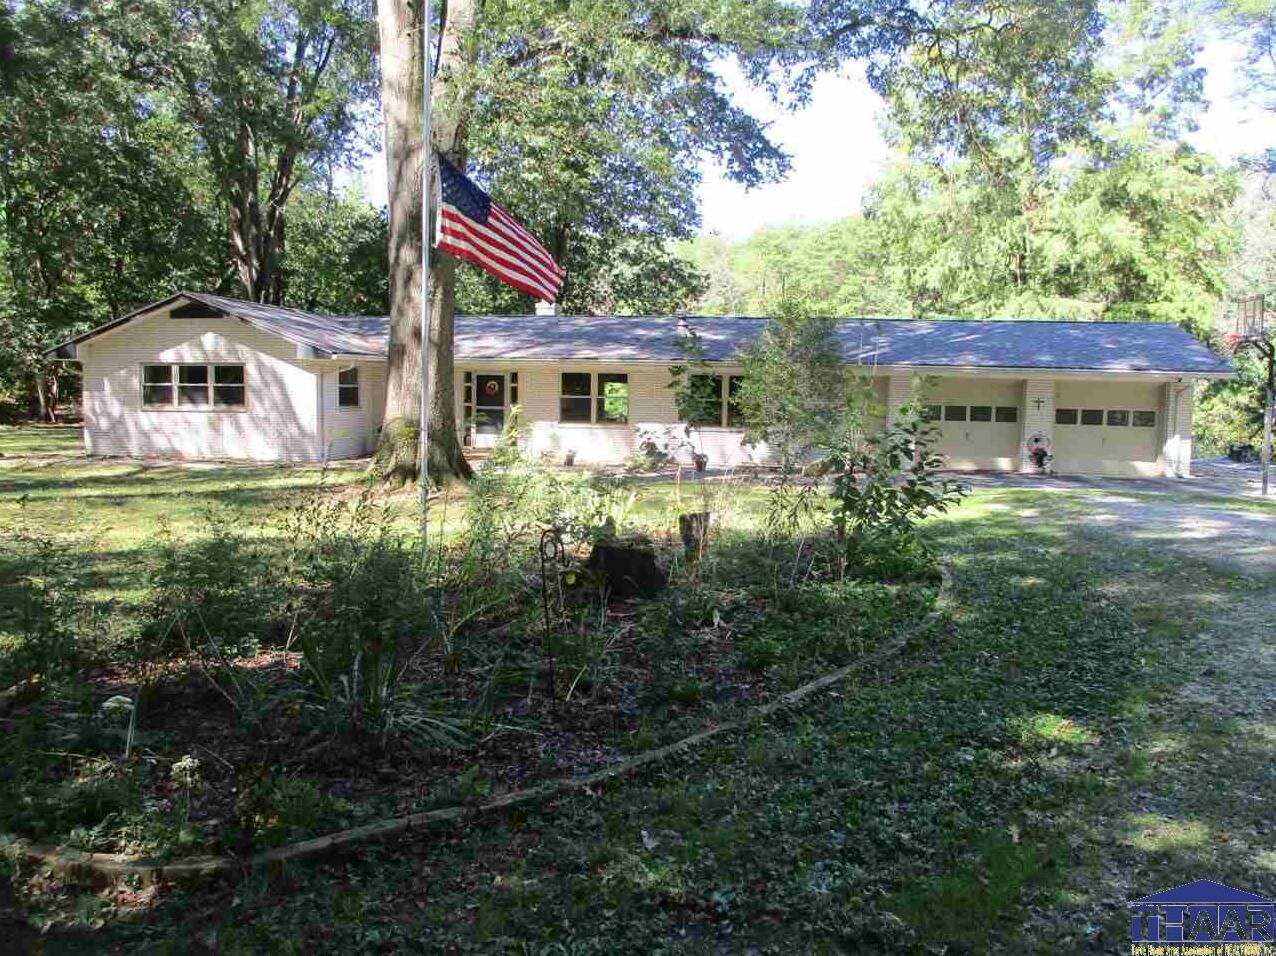 Photo of 8251 State Rd 159 Terre Haute IN 47802